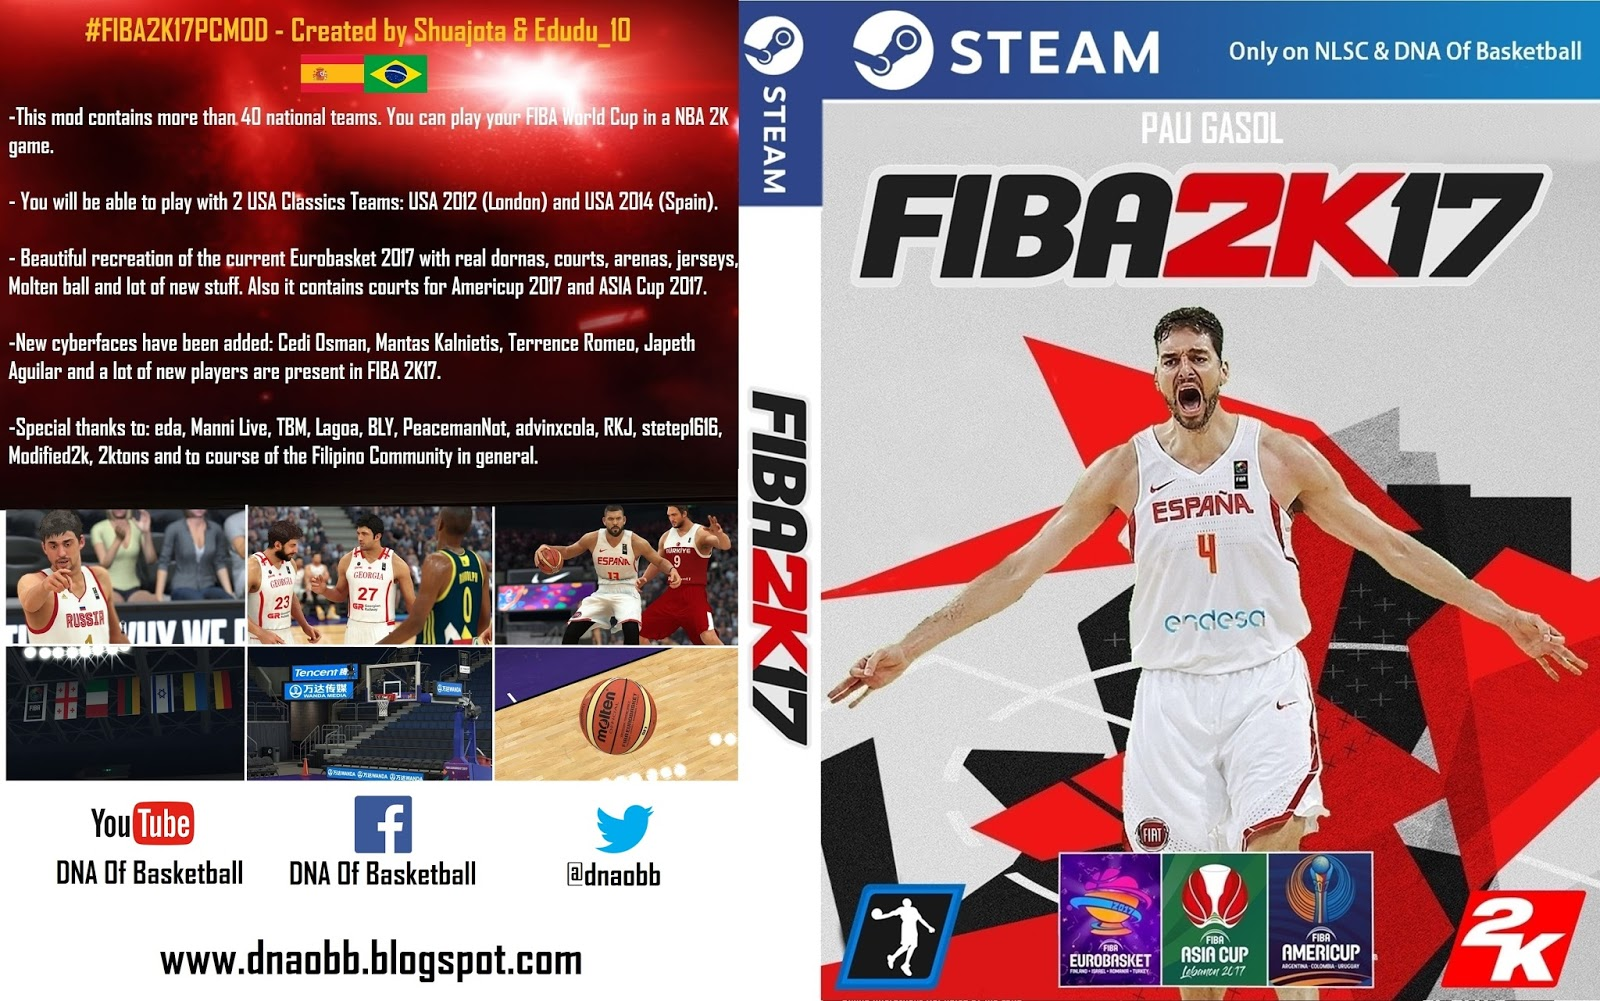 67220dba1a2352 FIBA 2K17 PC MOD  FINAL VERSION  RELEASED - Shuajota